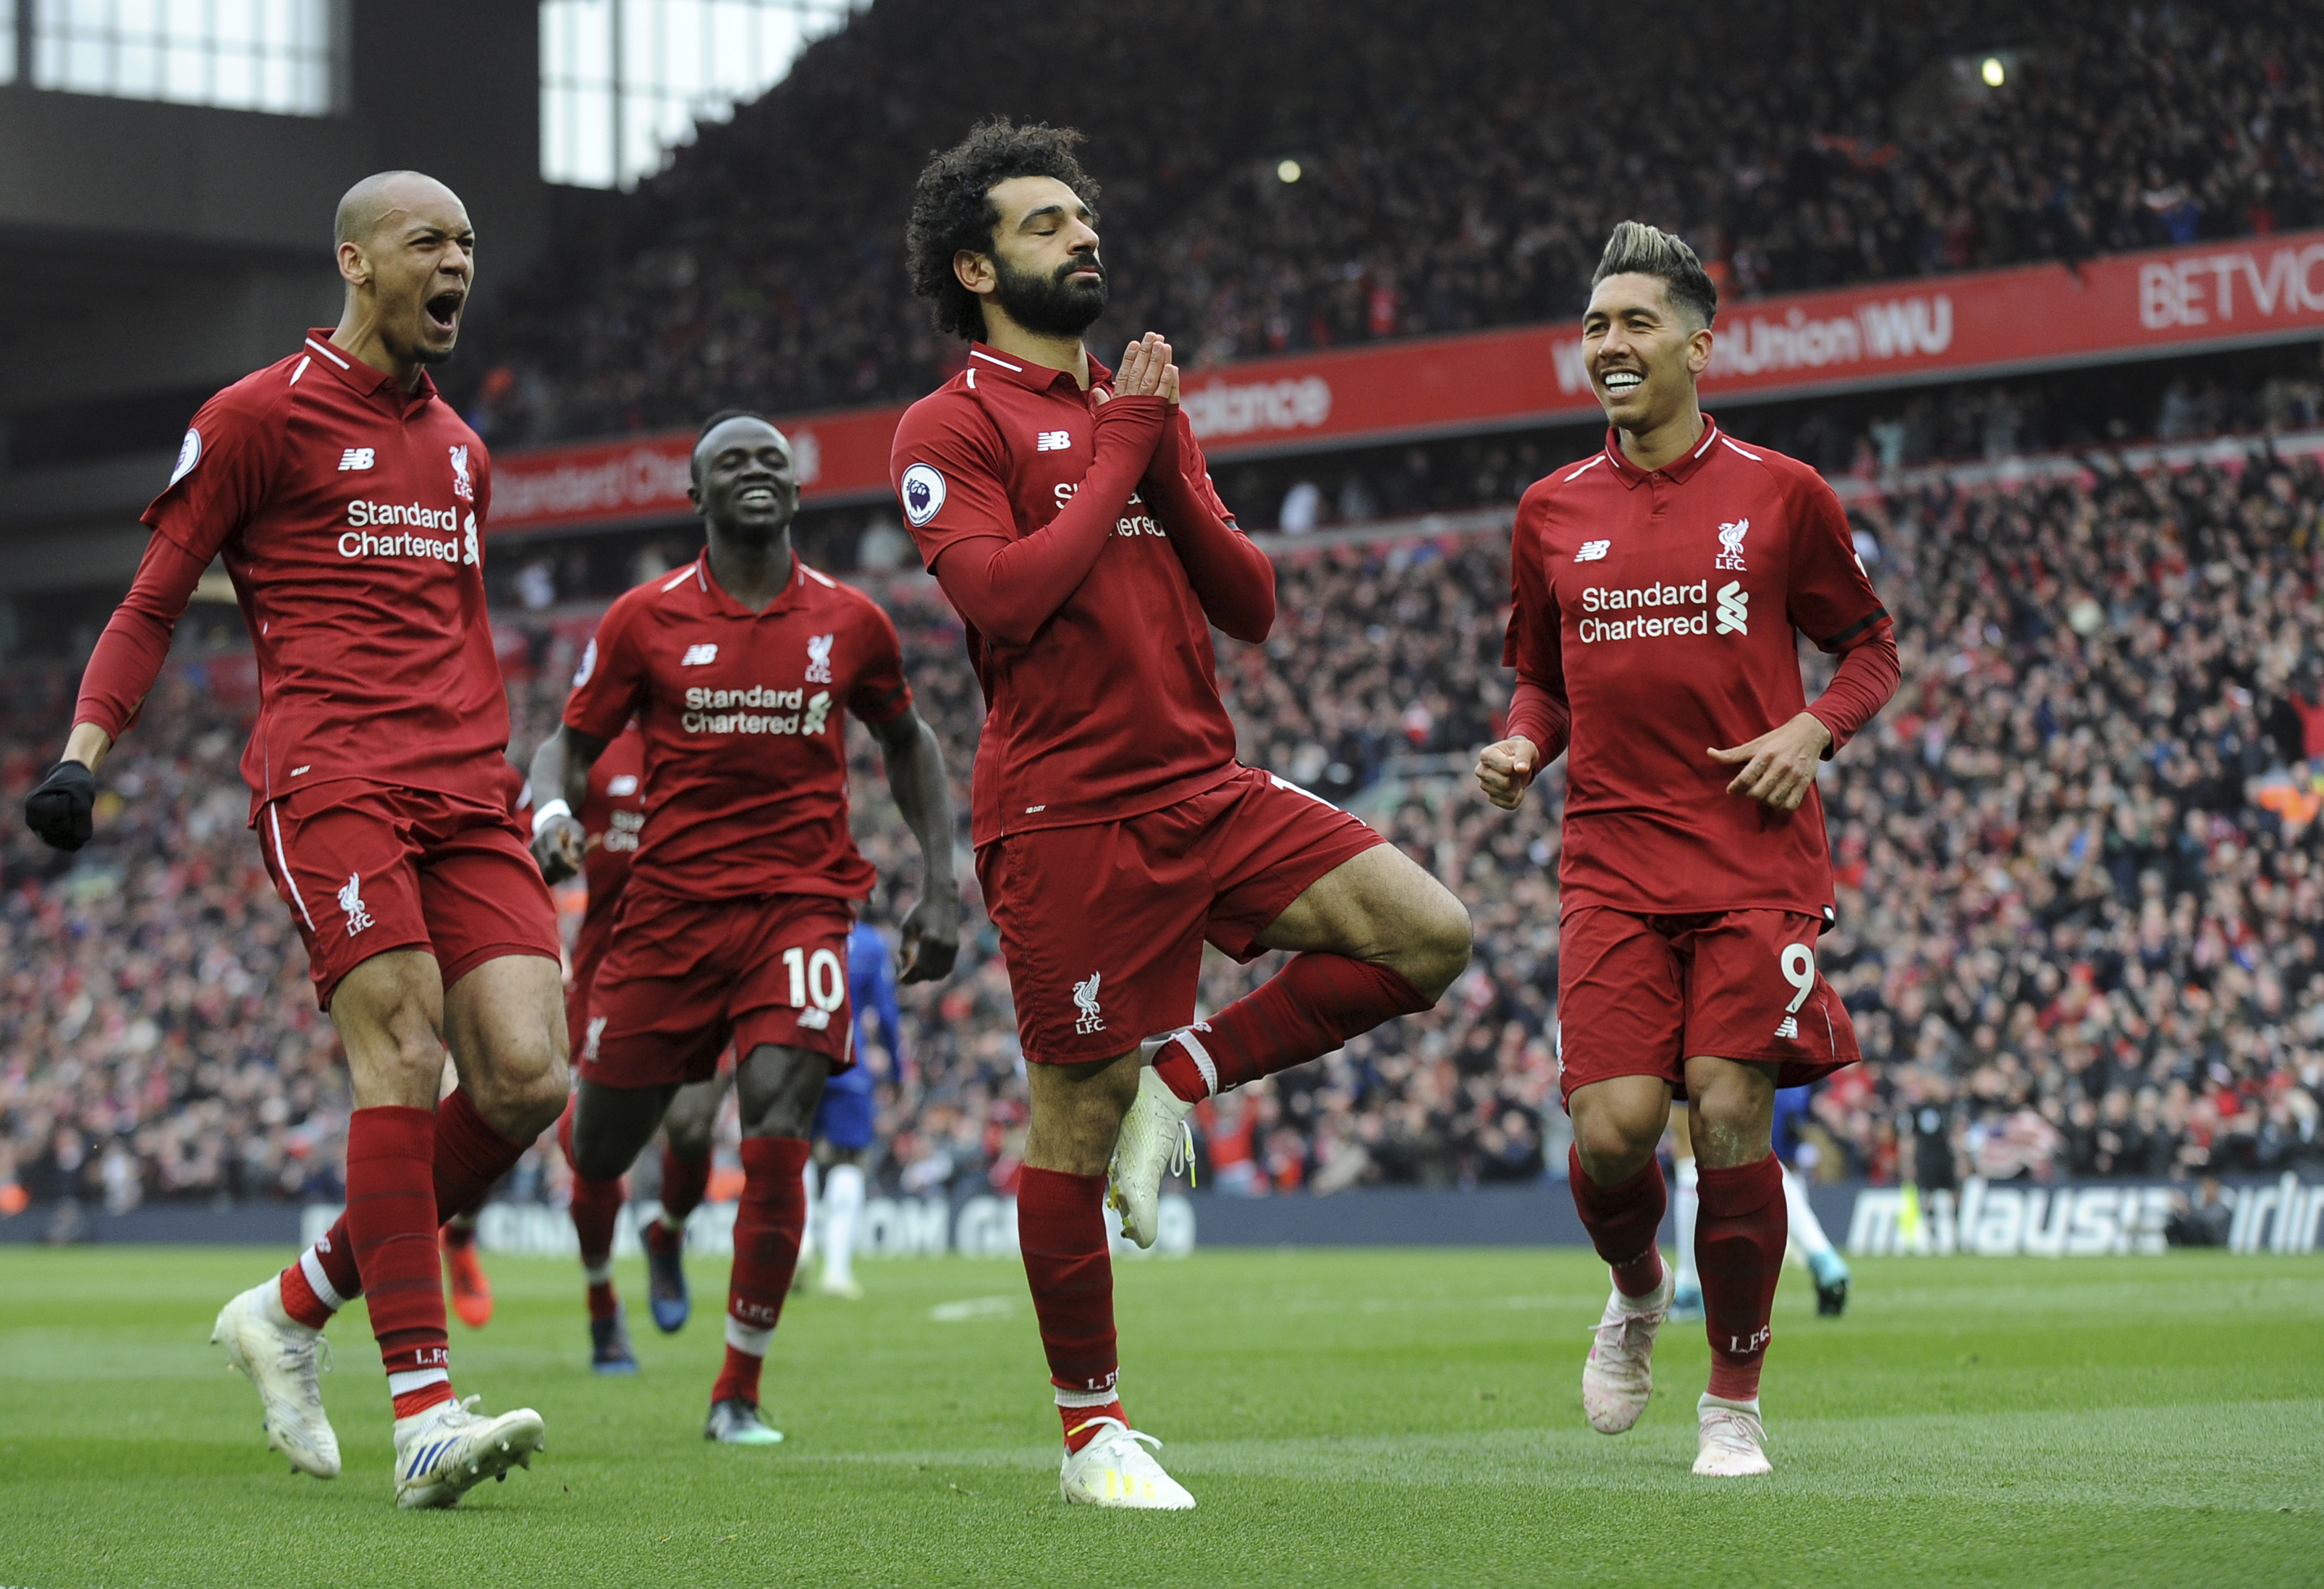 Mo Salah's goal earned Liverpool three points against Chelsea. Image: PA Images